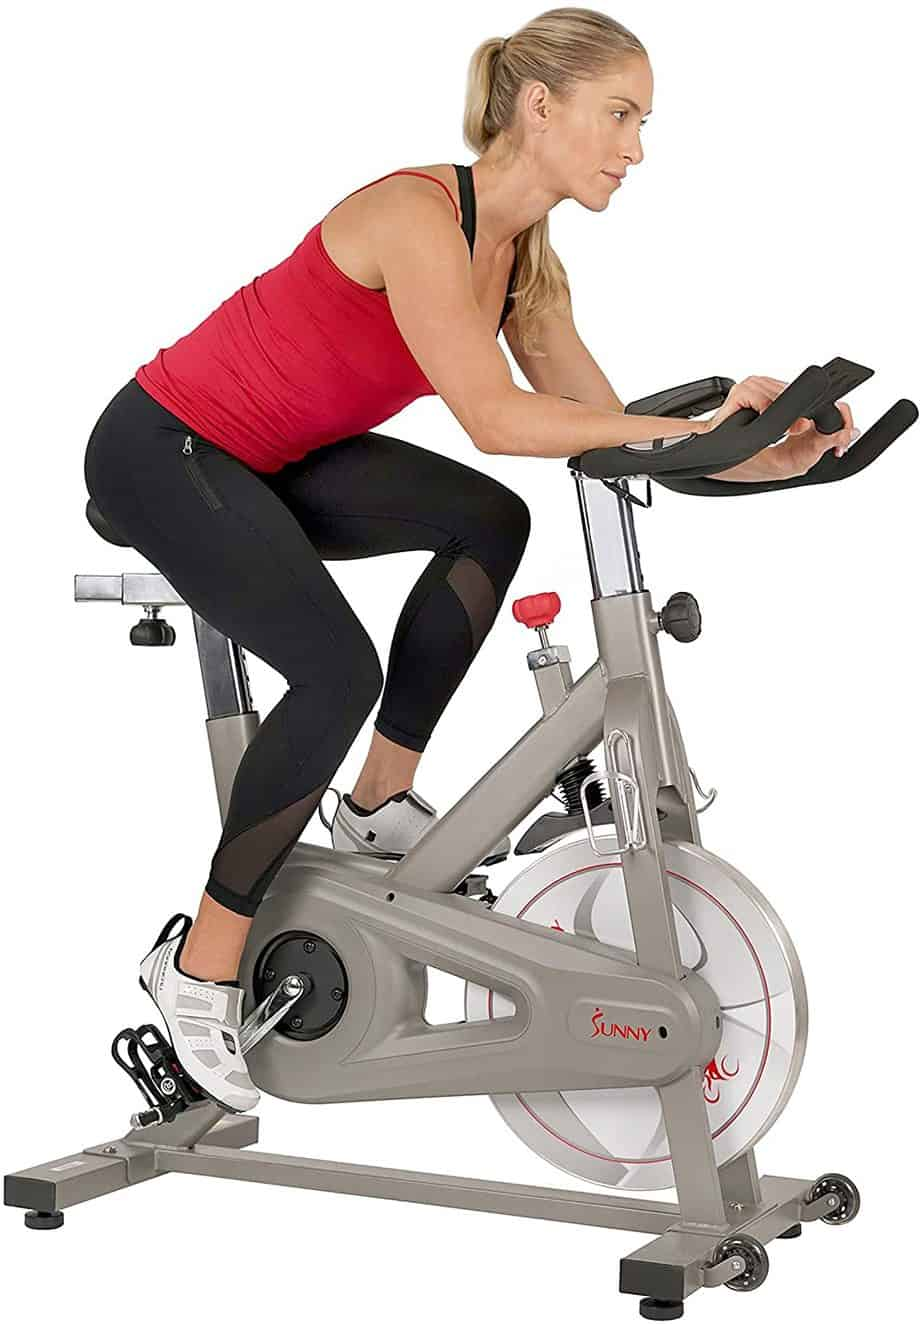 A lady exercises with the Sunny Health & Fitness SF-B1851 Synergy Pro Indoor Cycling Bike